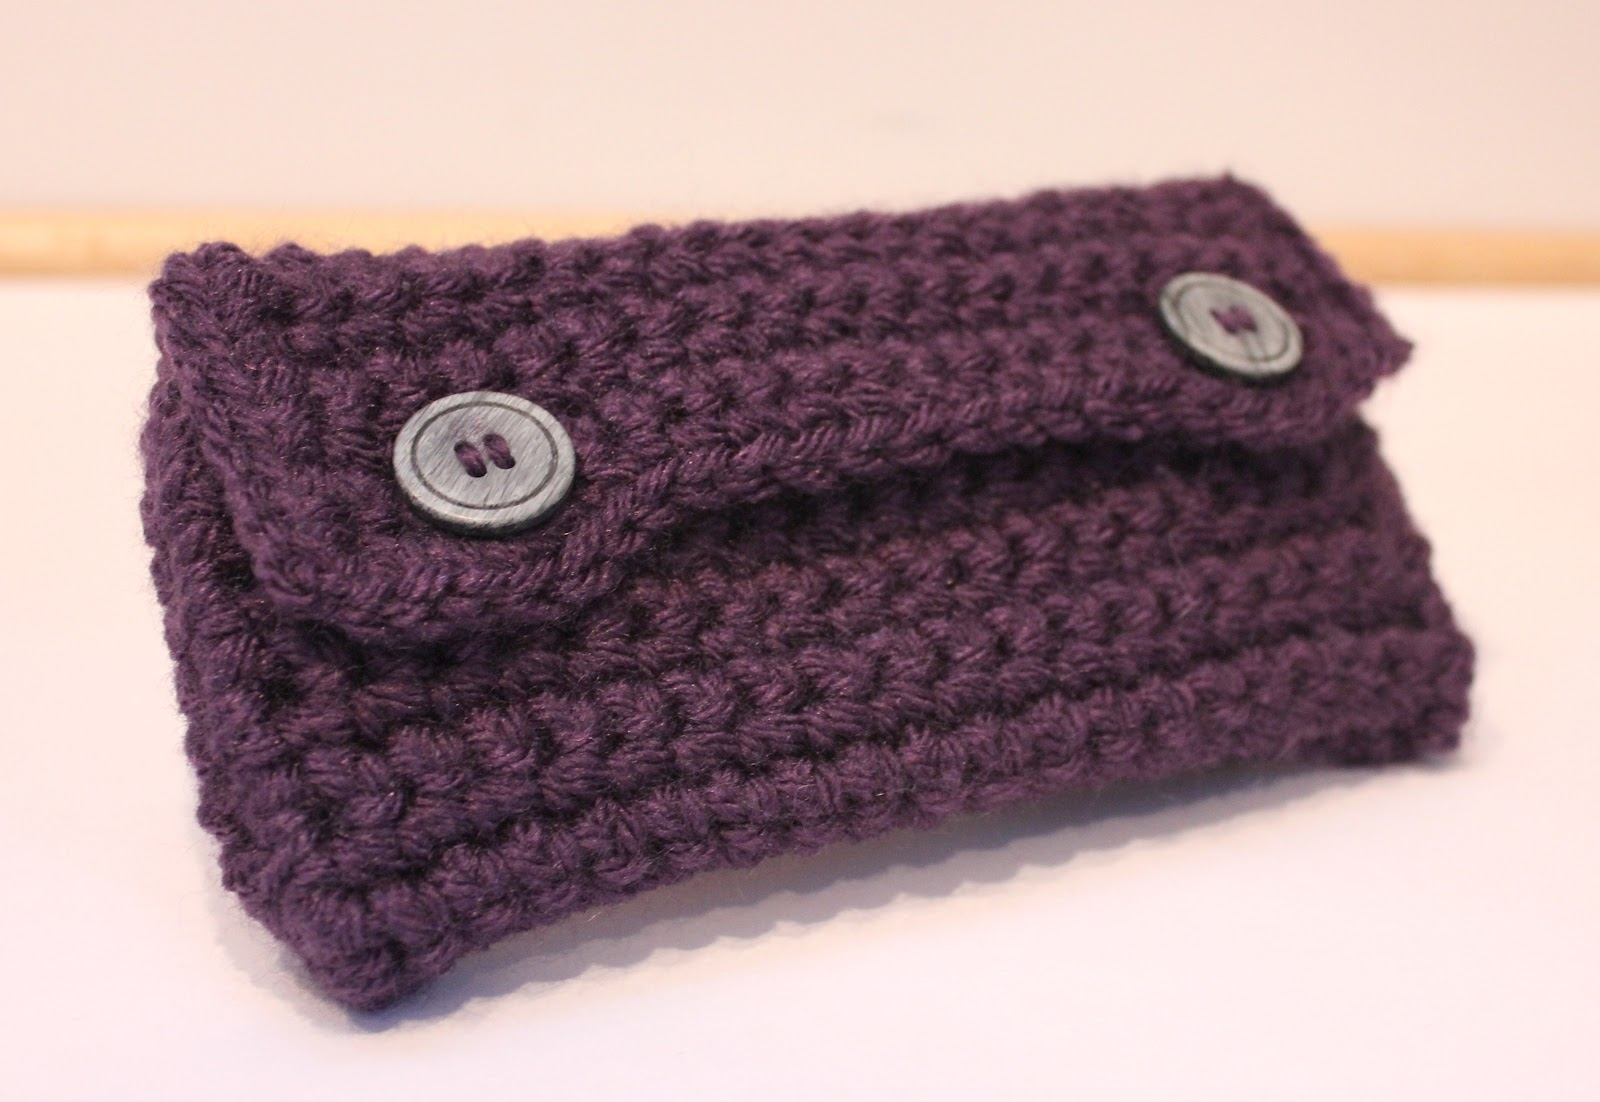 Crochet Clutch Pattern Free : Crochet Pattern Central Free Winter Related Crochet 2016 Car Release ...